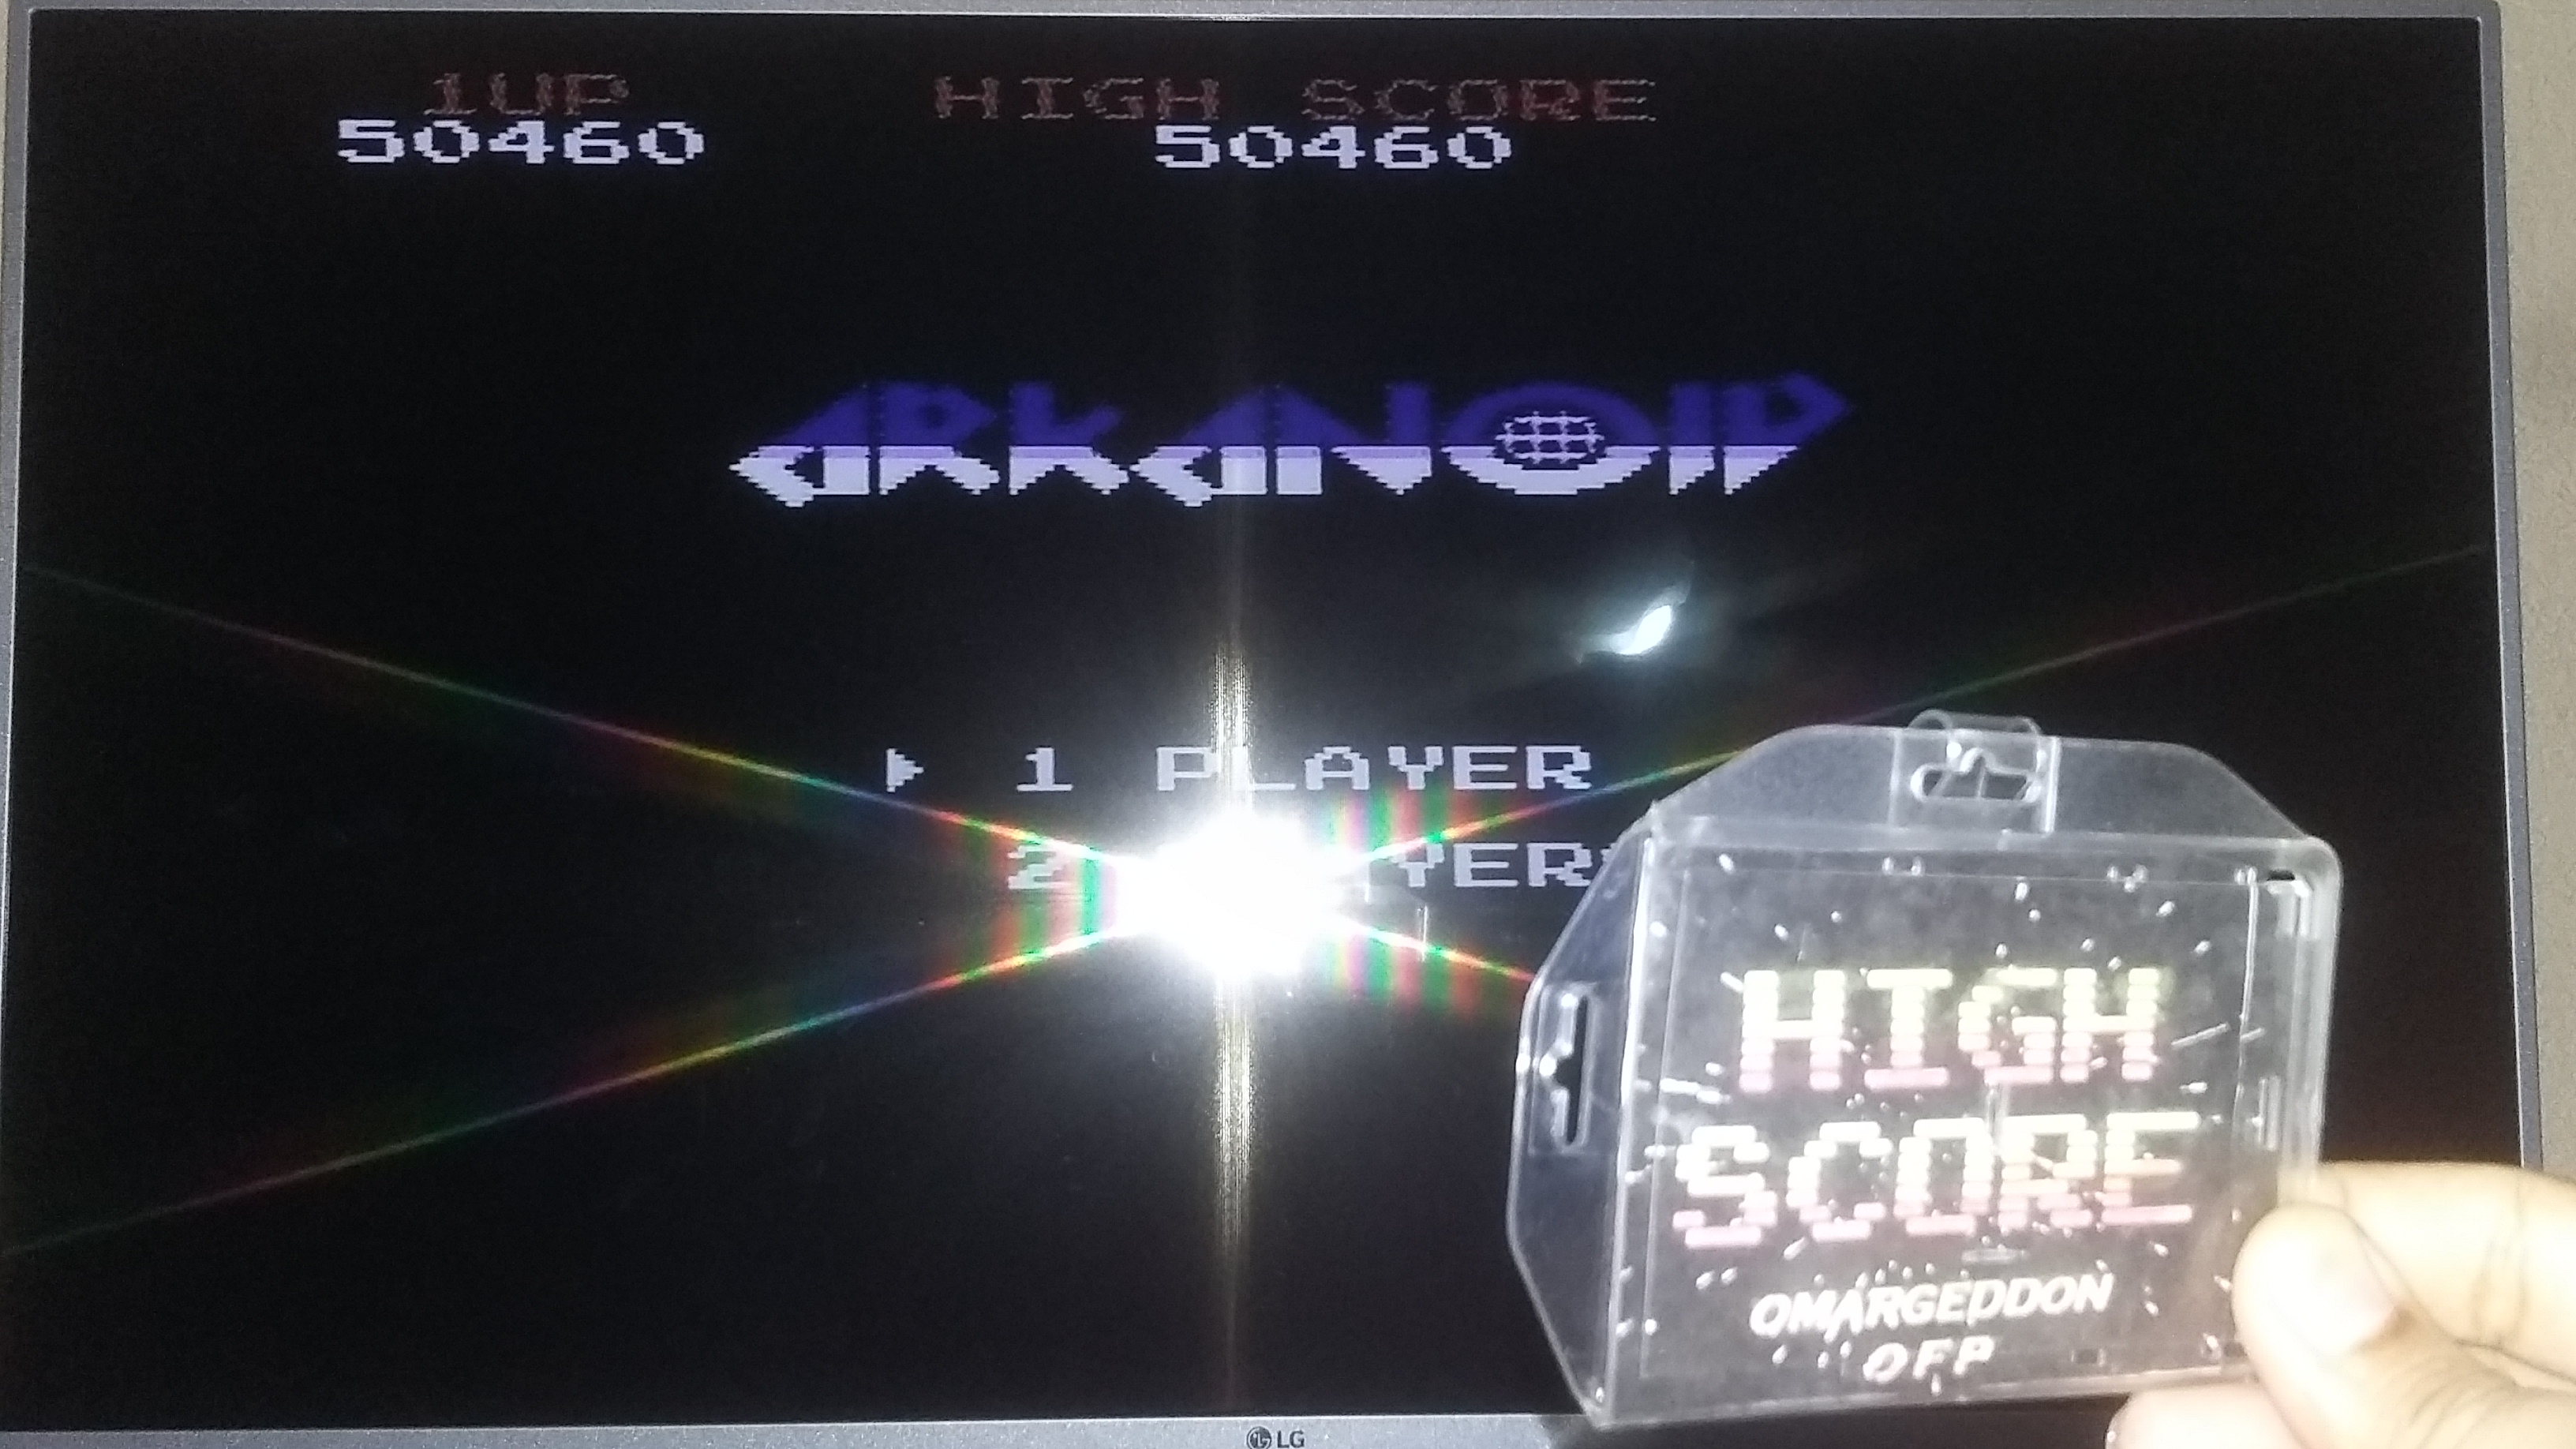 omargeddon: Arkanoid (NES/Famicom) 50,460 points on 2018-05-12 18:14:14